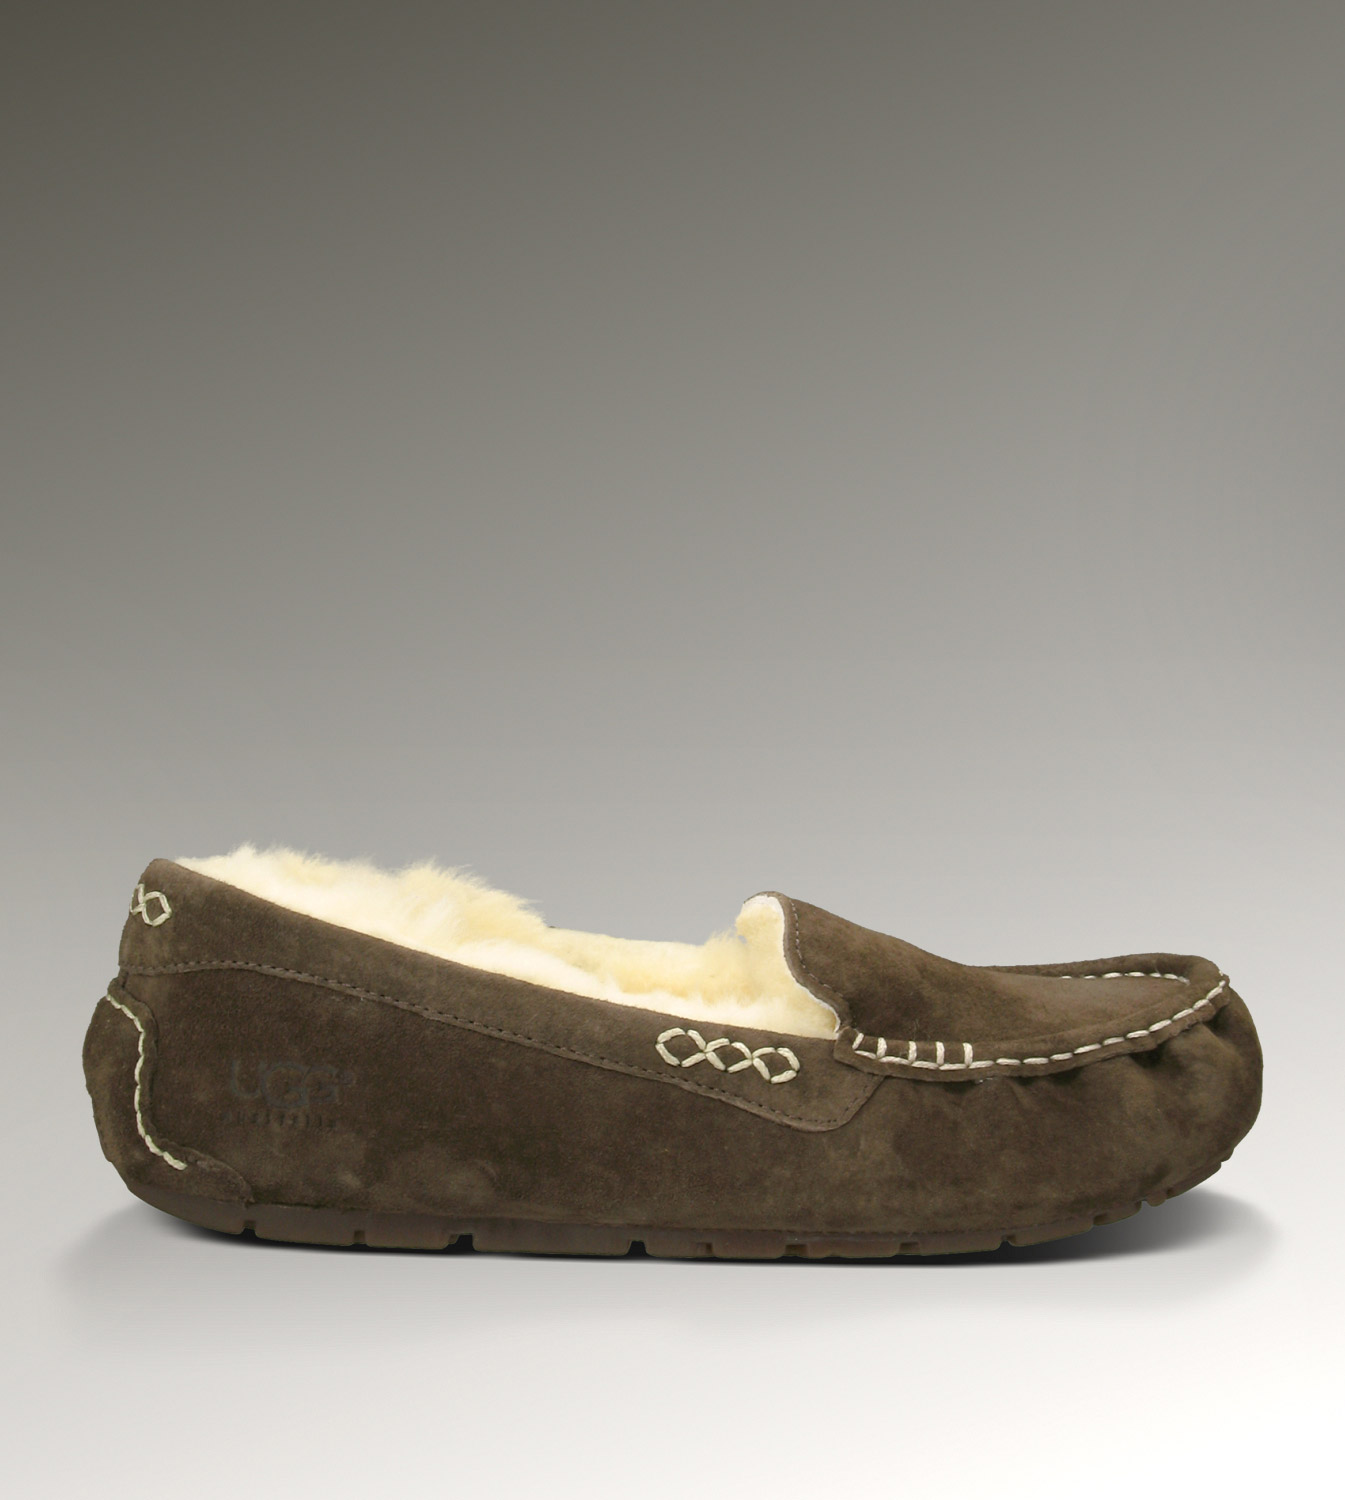 UGG Ansley 3312 Chocolate Slippers